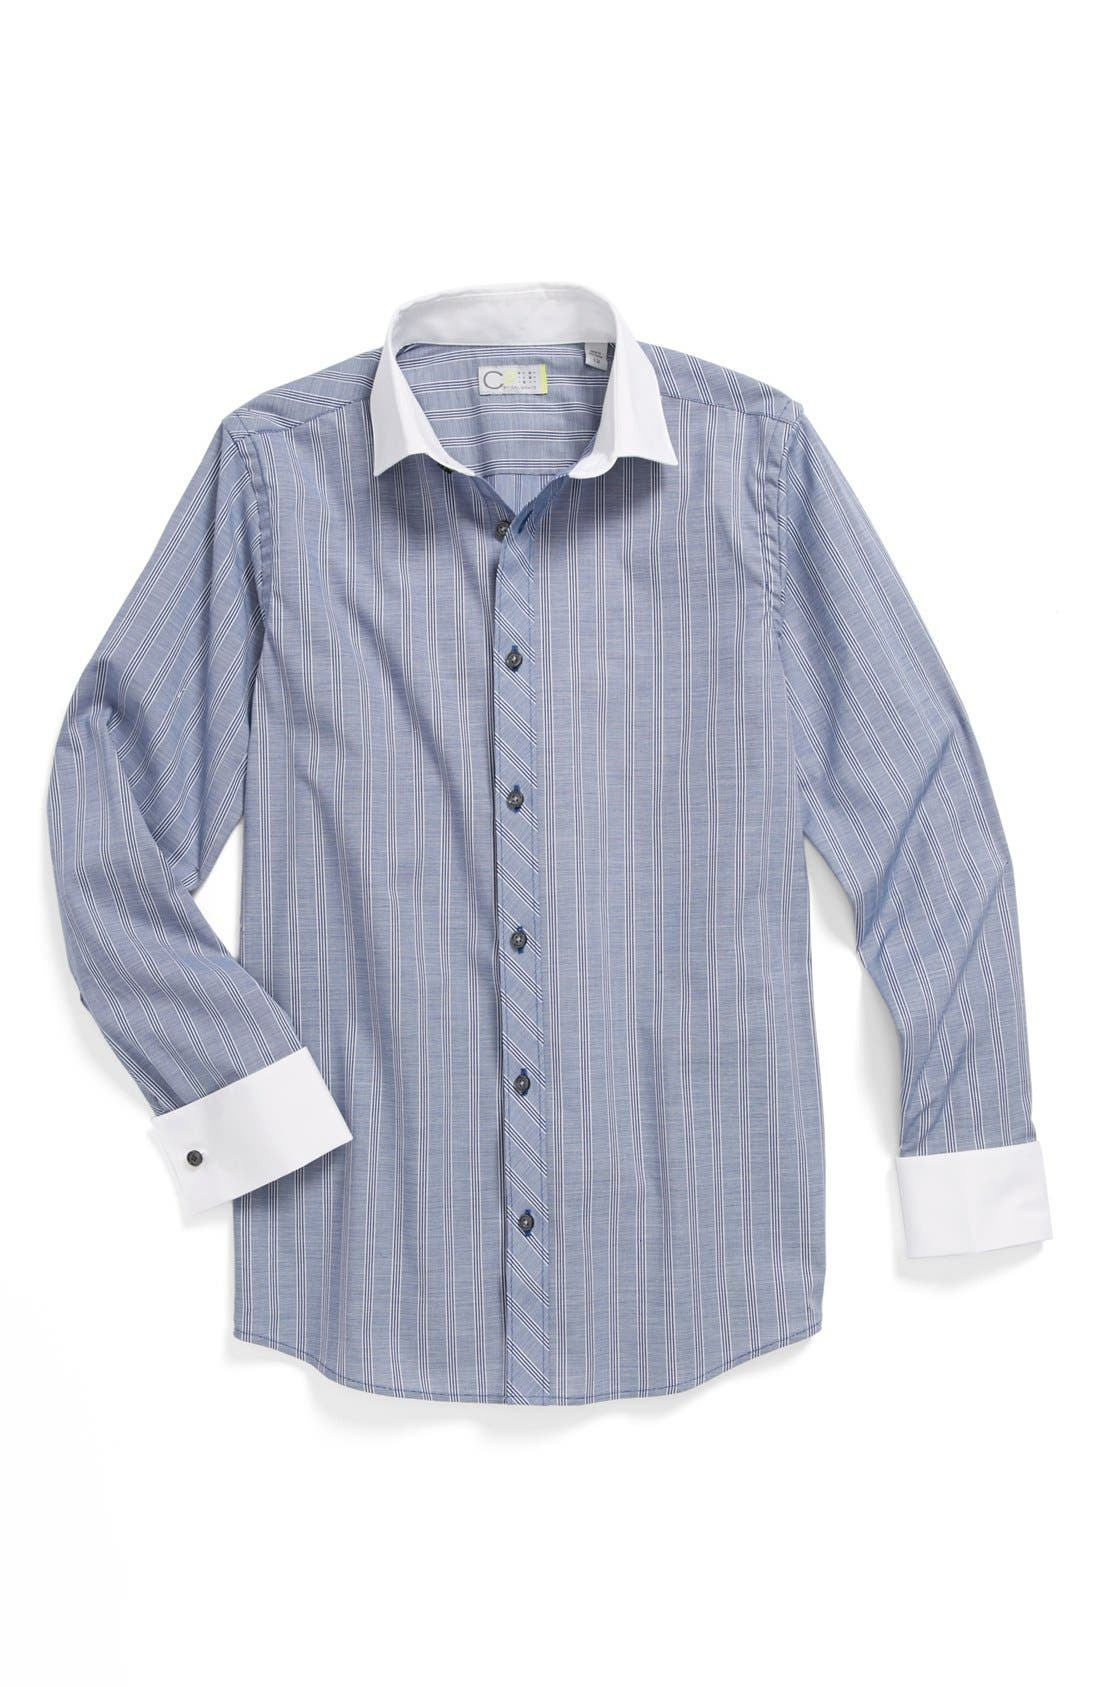 Alternate Image 1 Selected - C2 by Calibrate Stripe Dress Shirt (Big Boys)